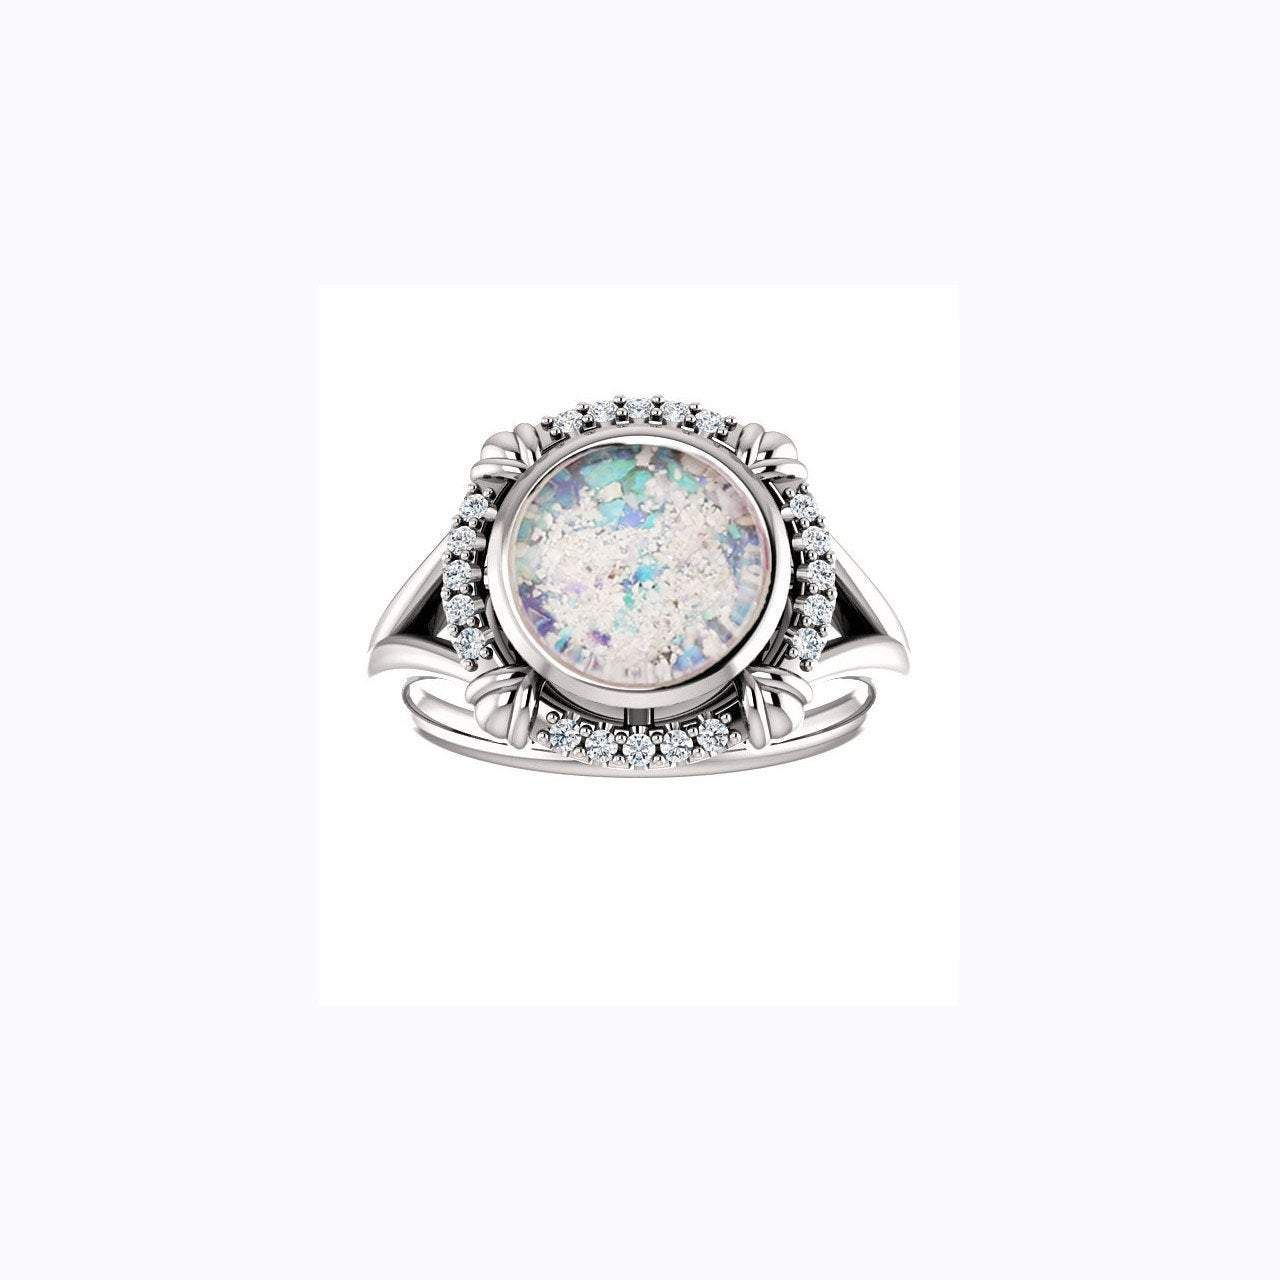 8mm Round Opal Cremation Ring 10k White Gold And Diamond Ring Cremation Jewelry Ash Ring Ash Jewelry Urn Ashes Jewelry Memorial Jewelry Ashes Jewelry